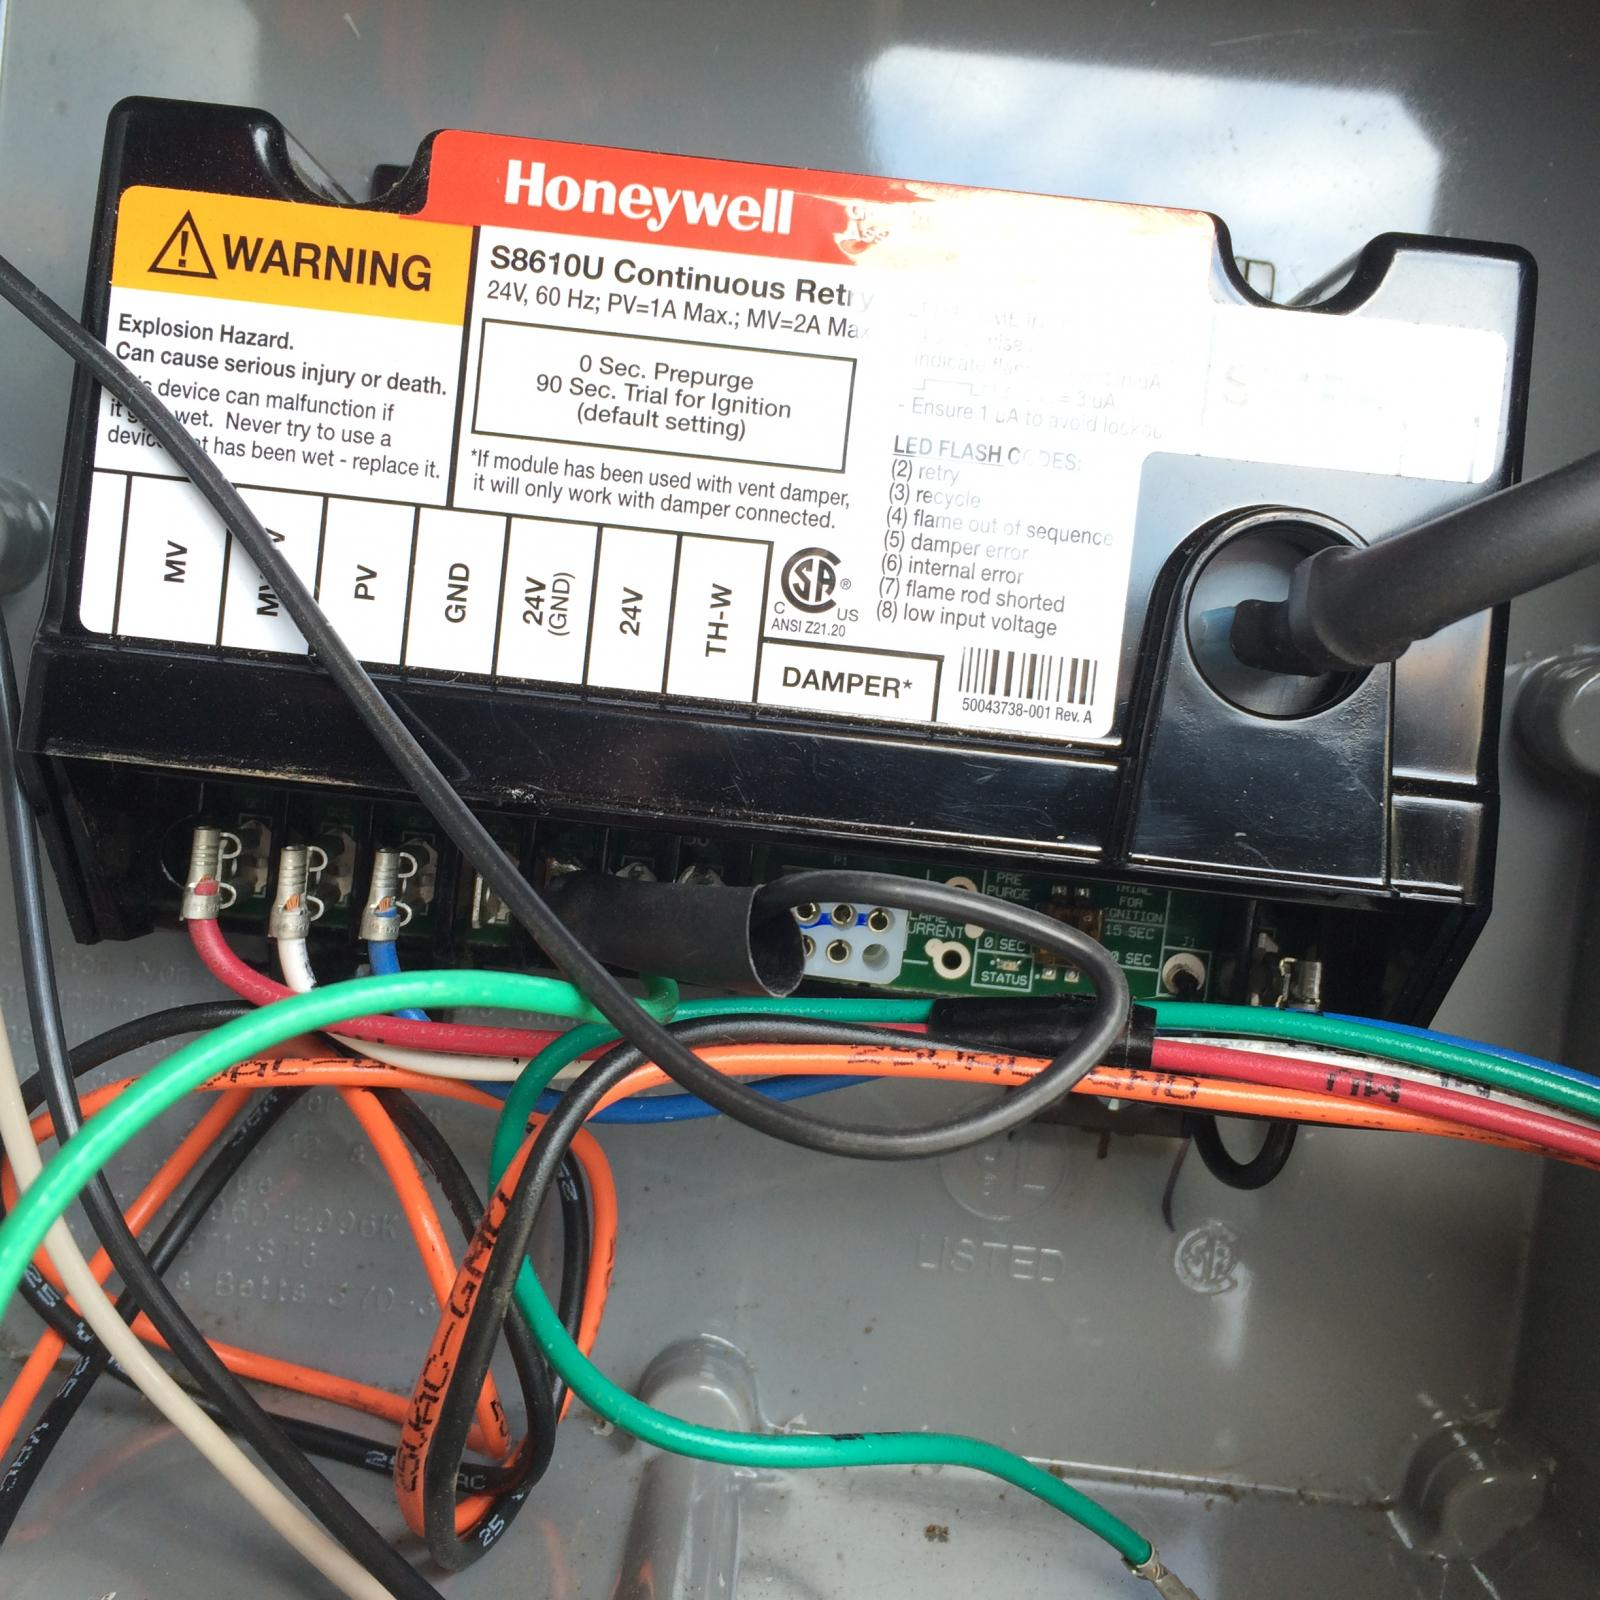 Help Wiring Honeywell Y8610u Gas Control Valve And Pilot Burner Home